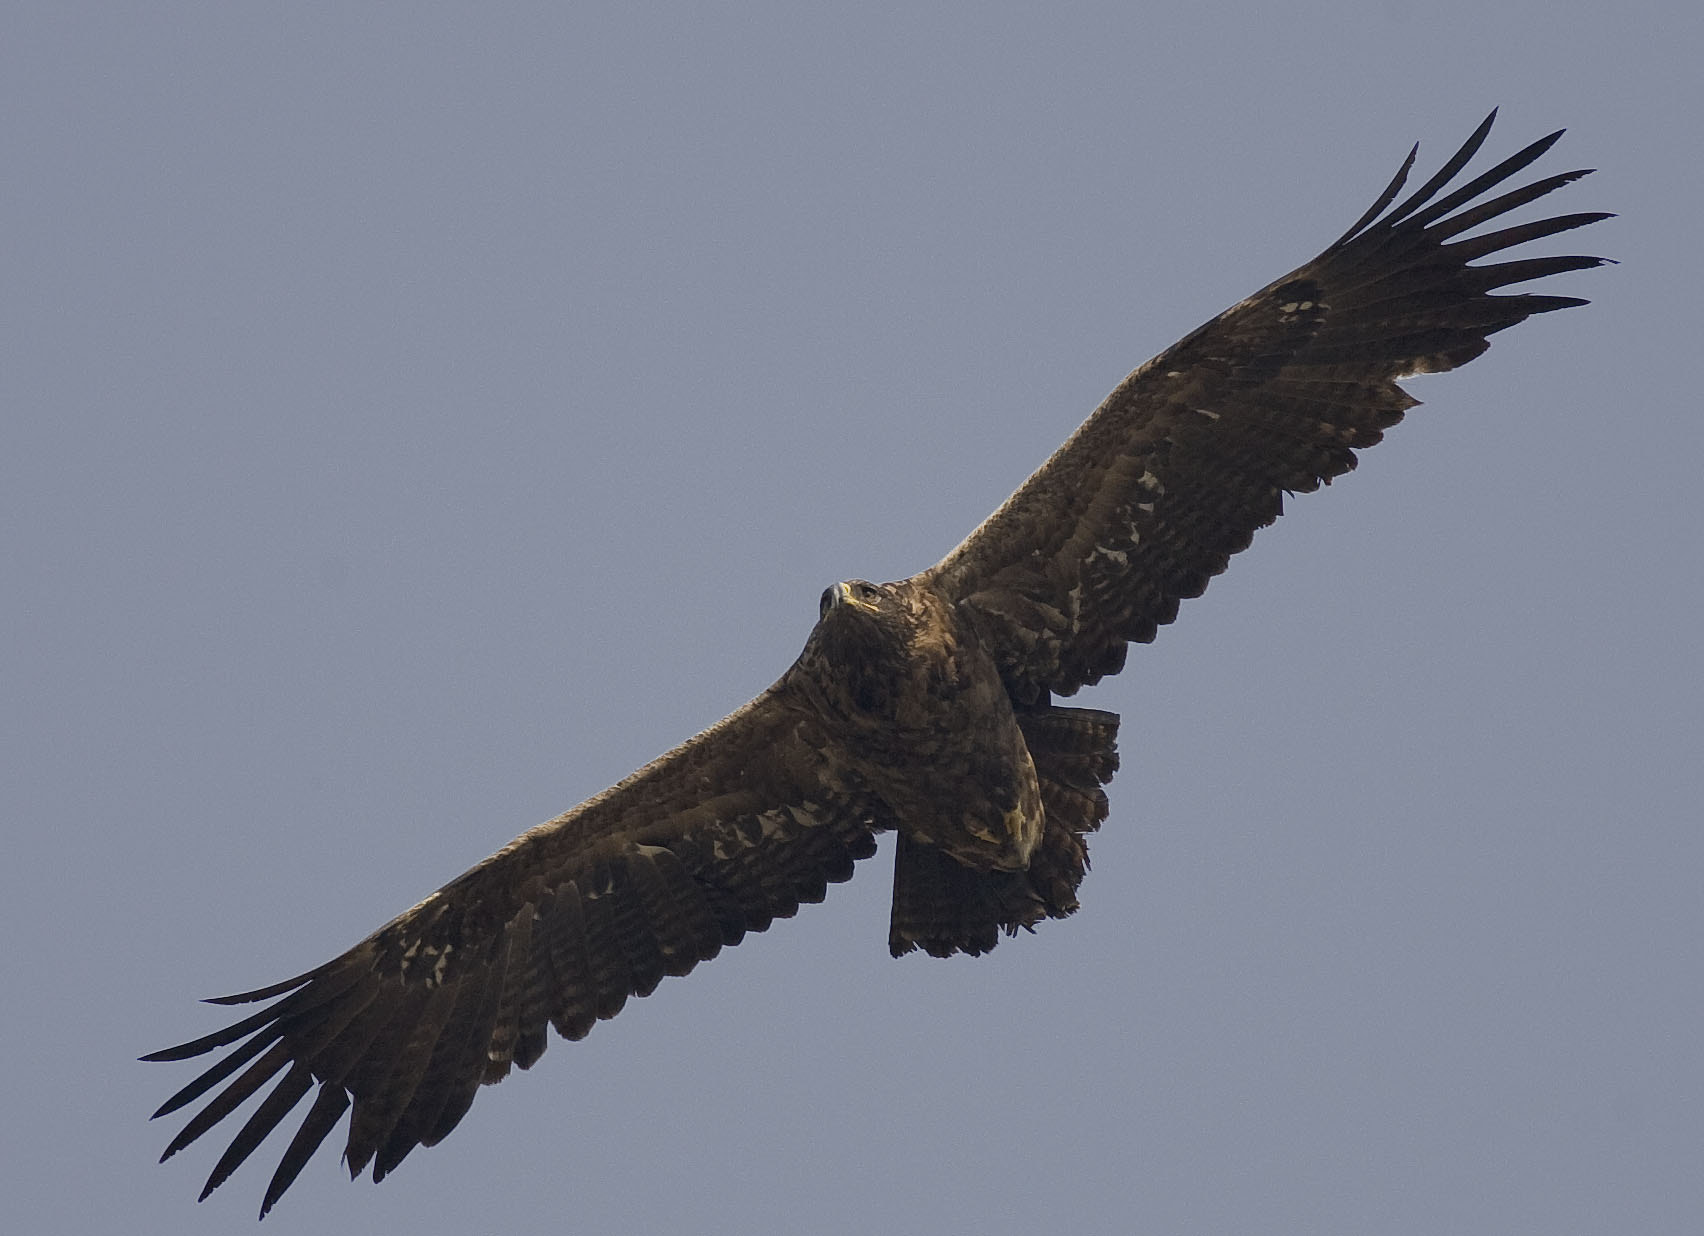 Photograph Steppe Eagle in flight by Pankaj Ratna on 500px